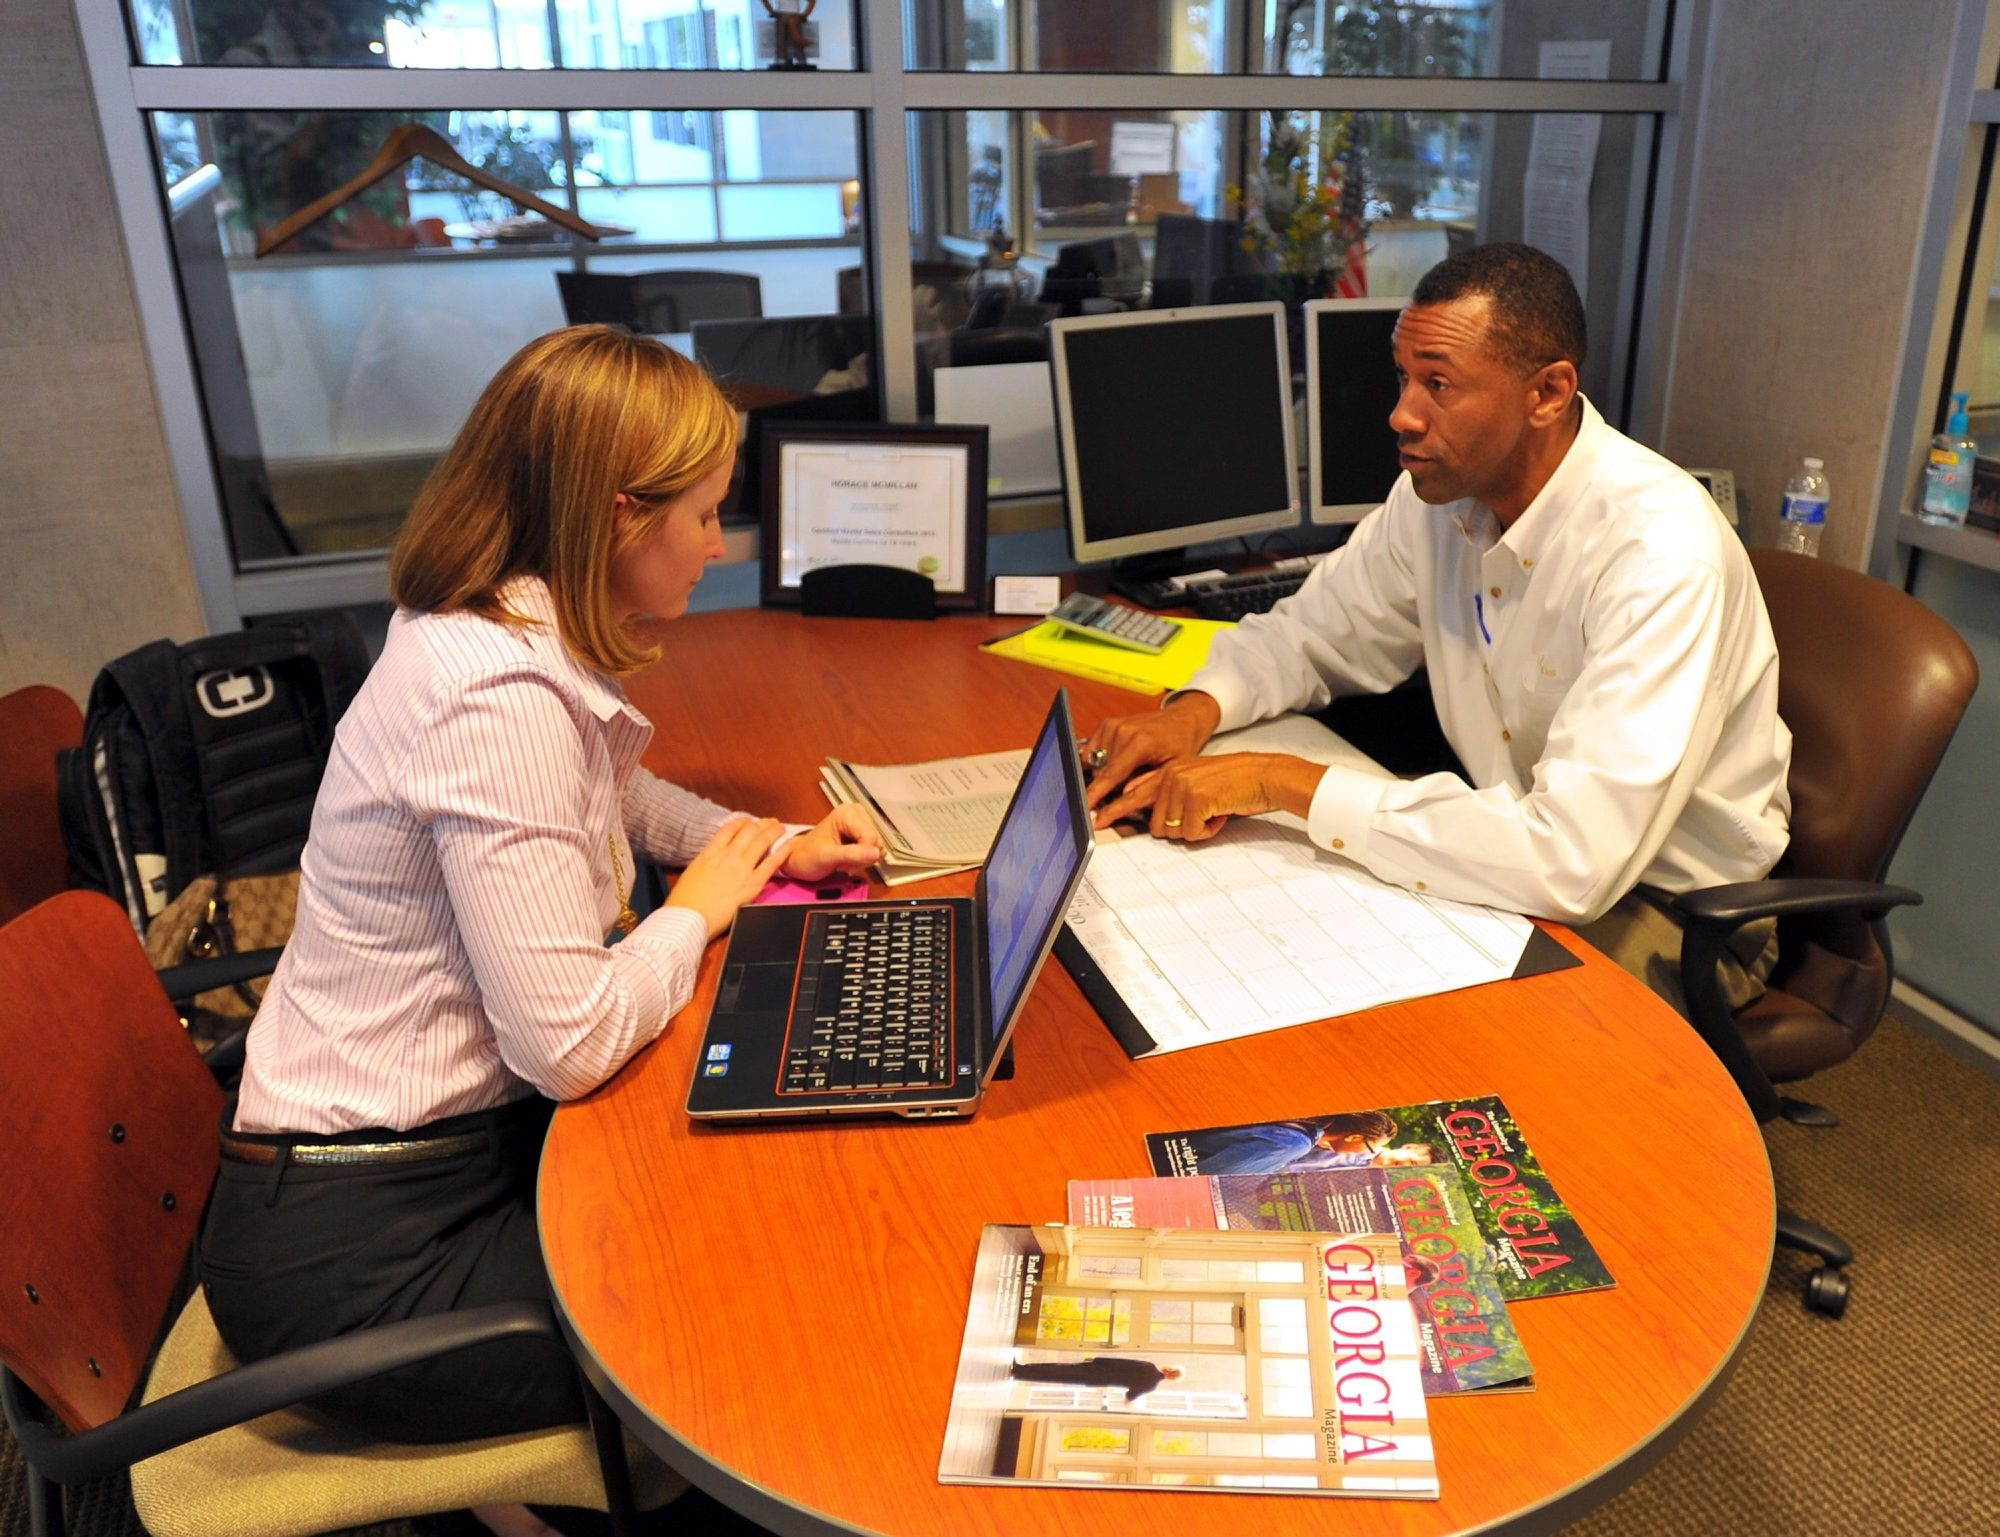 Lexus salesman Horace McMillan, right, reviews warranty information with car buyer Jennifer Williams at a dealership in Smyrna, Ga.